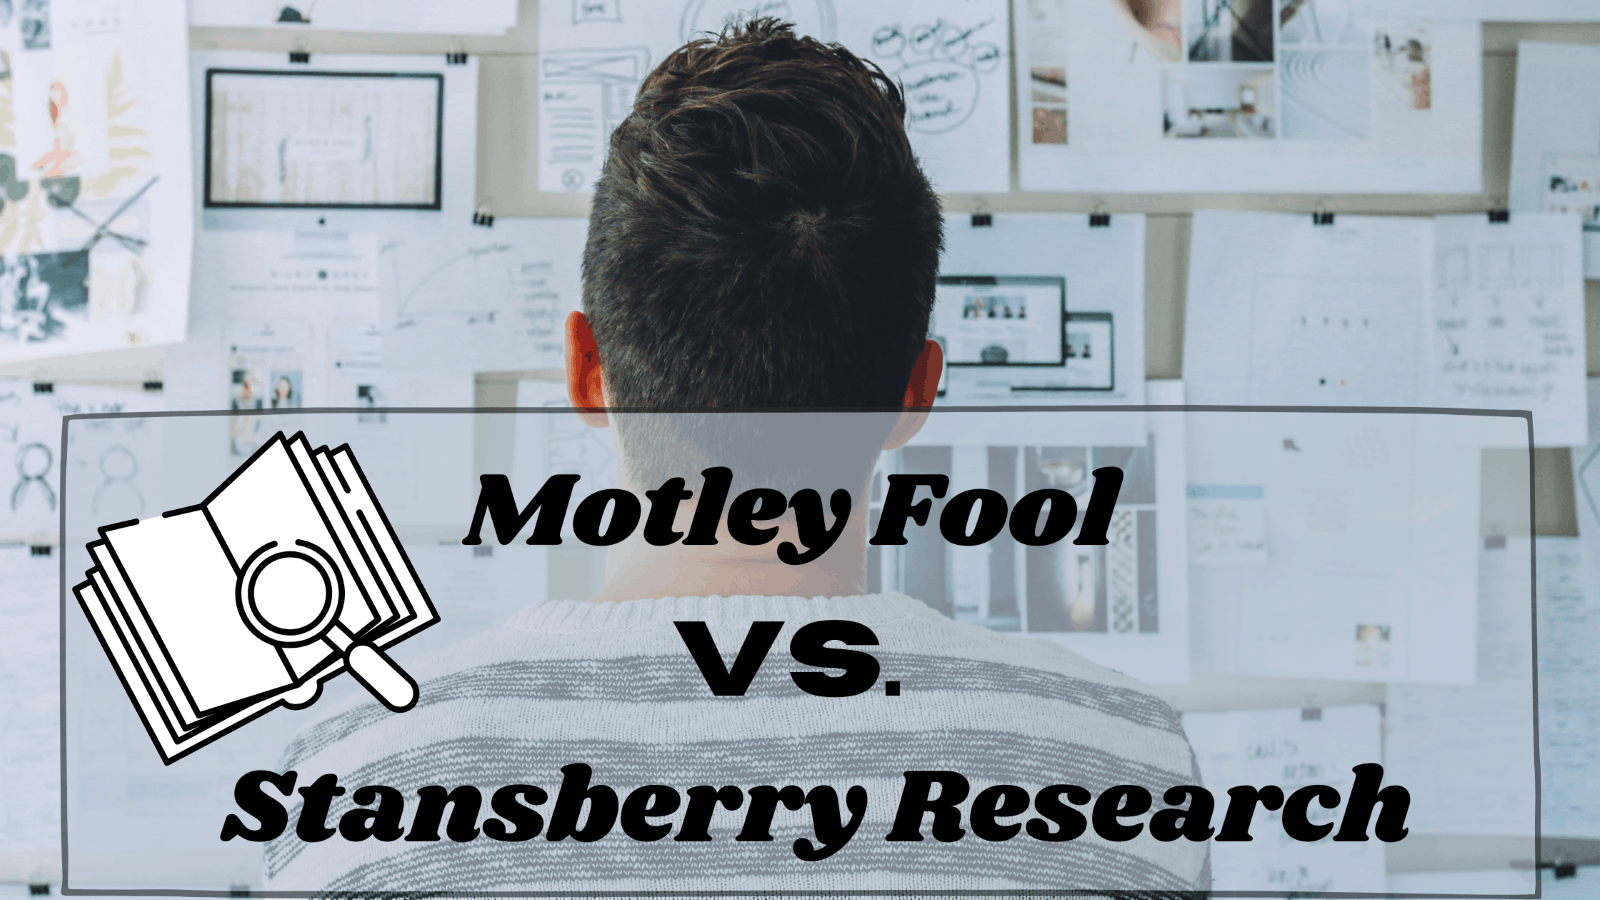 Motley Fool vs. Stansberry Research